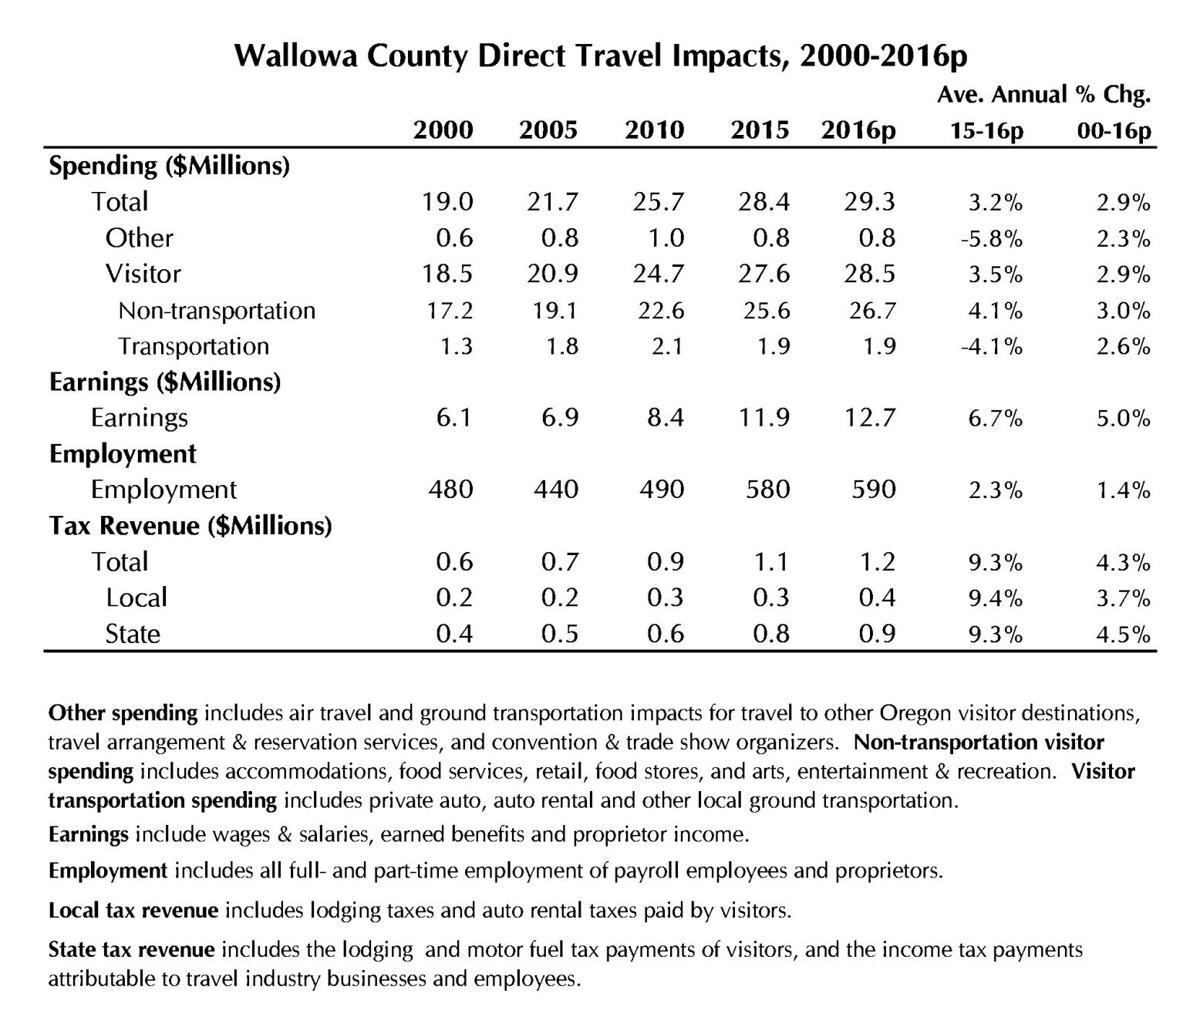 Wallowa County tourism spending rises